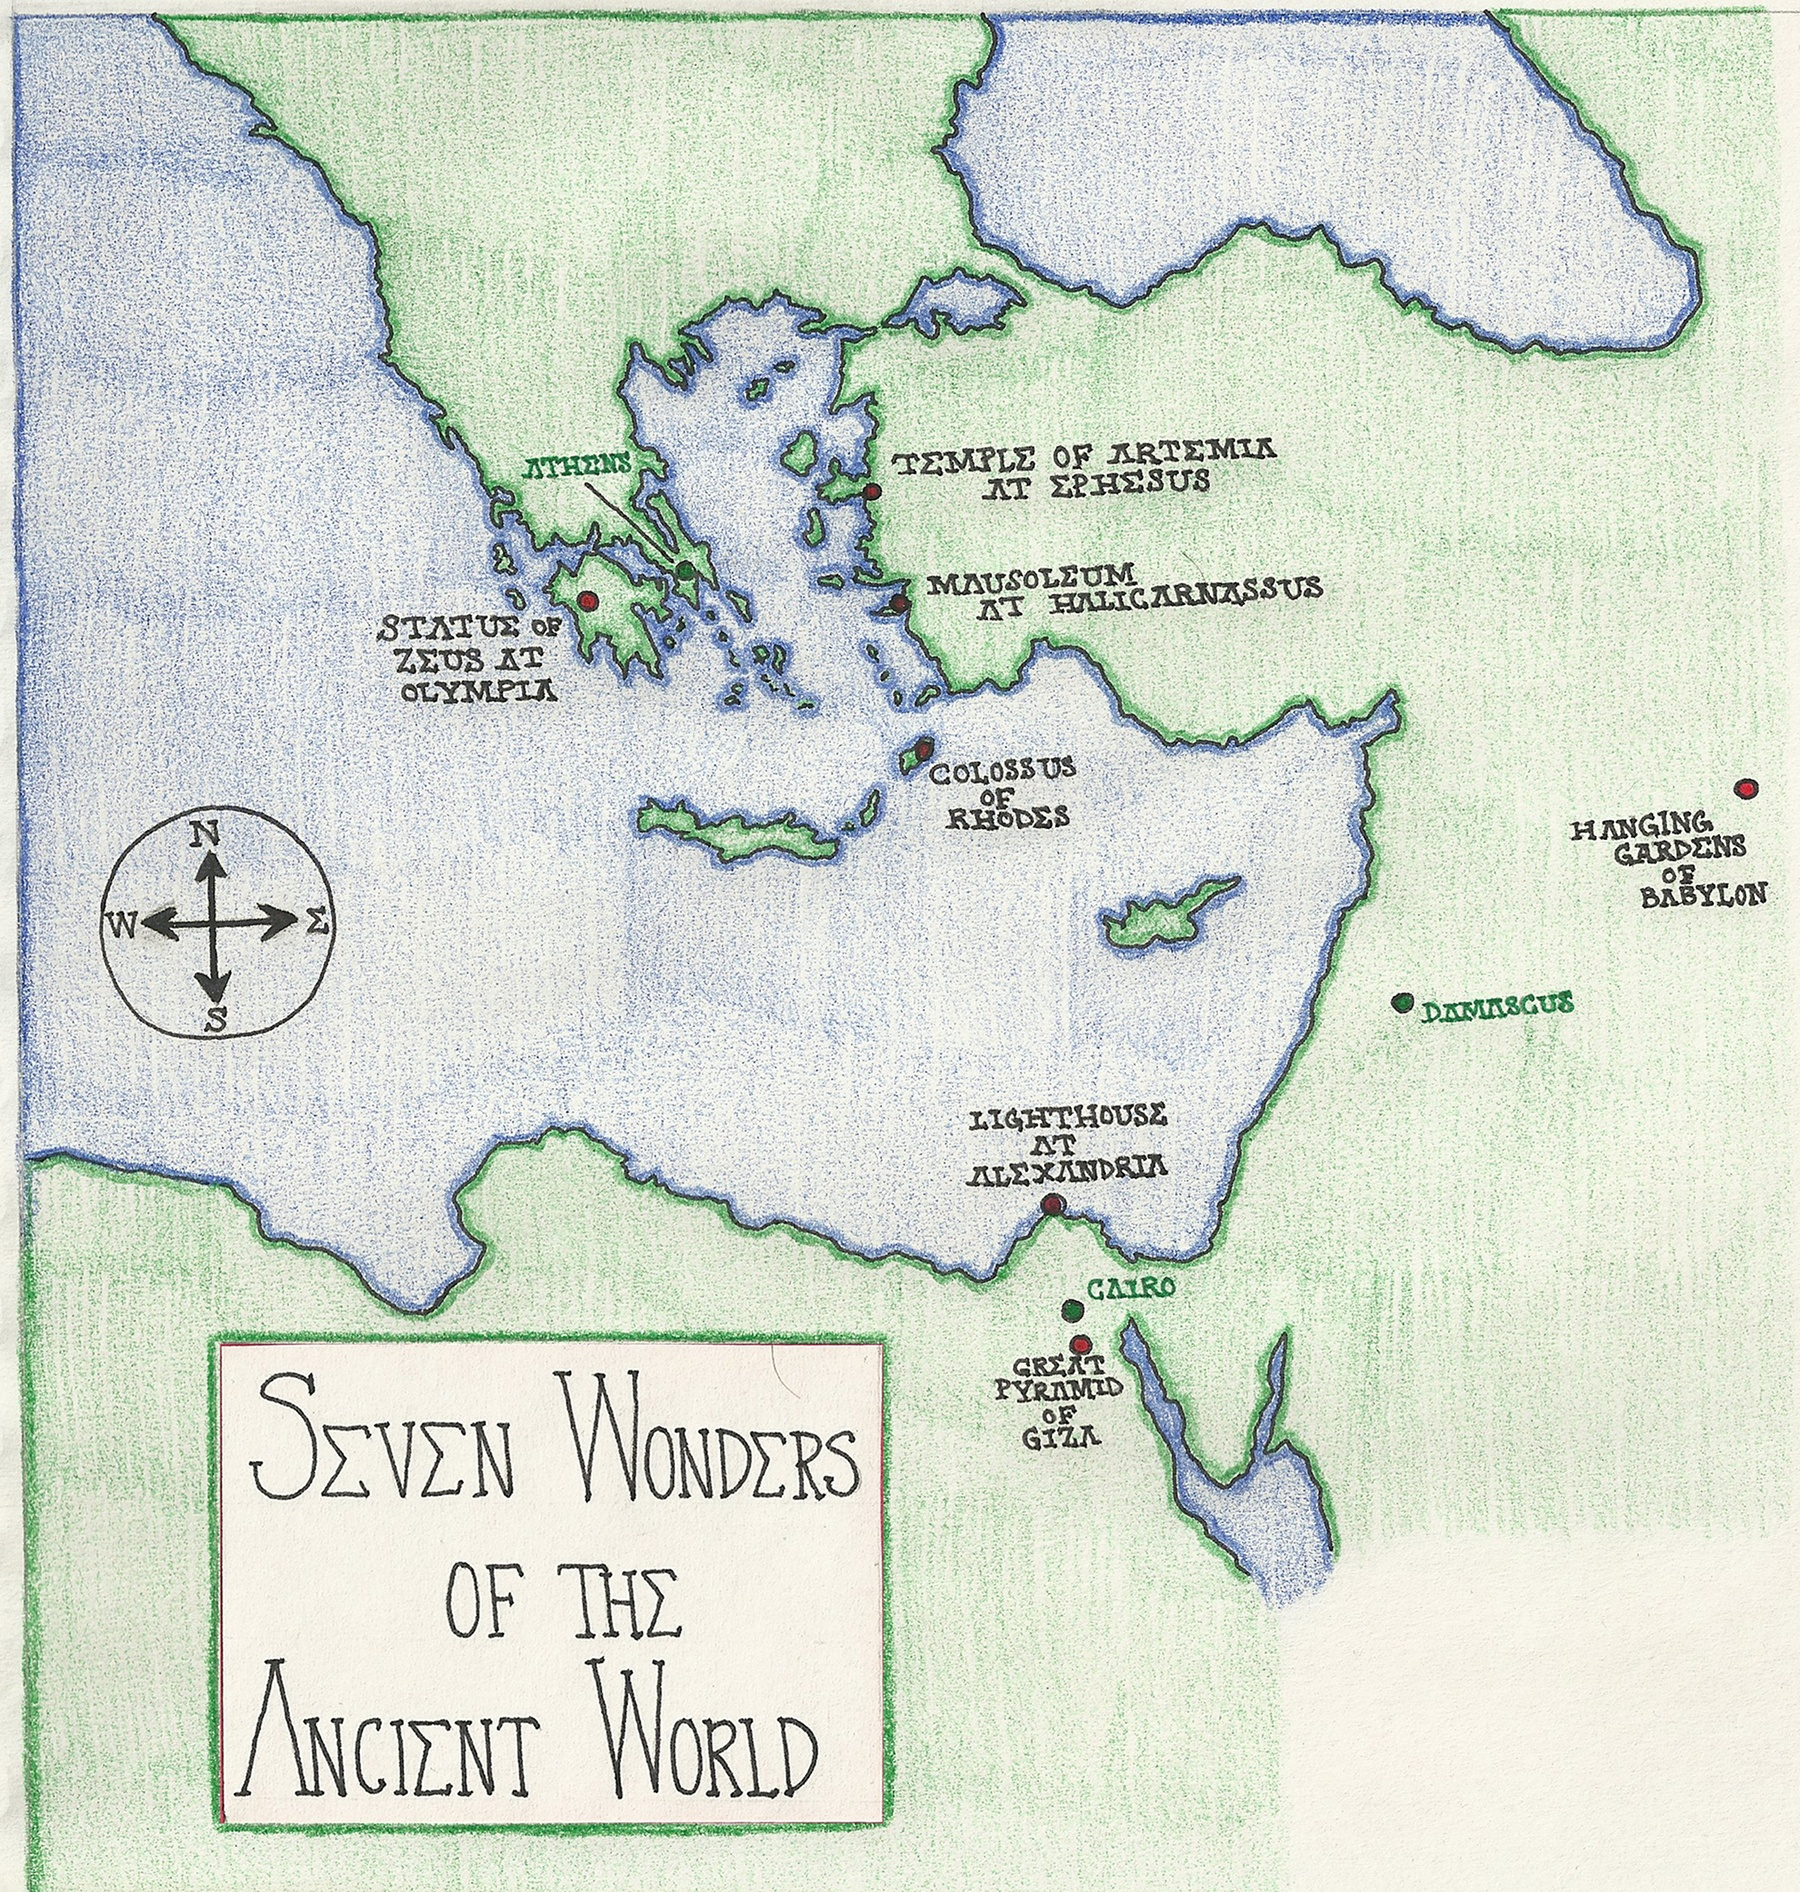 Hand Drawn Map: Seven Wonders of the Ancient World - image 1 - student project